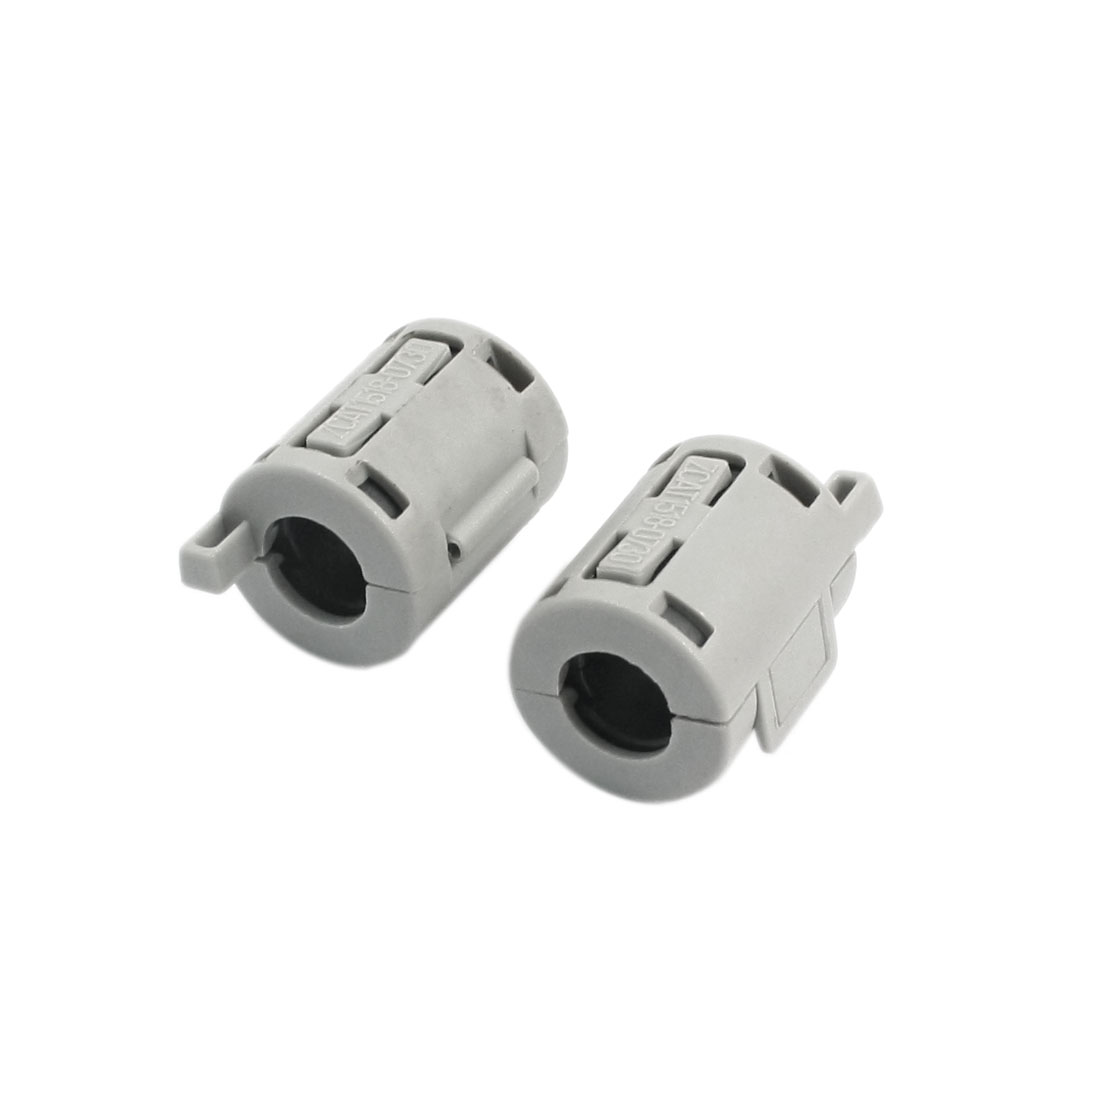 2Pcs 15mm x 18mm x 7mm Noise Suppressor Cylindrical Magnet Core Ferrite Ring Clip Clasp Gray for USB Data Cable